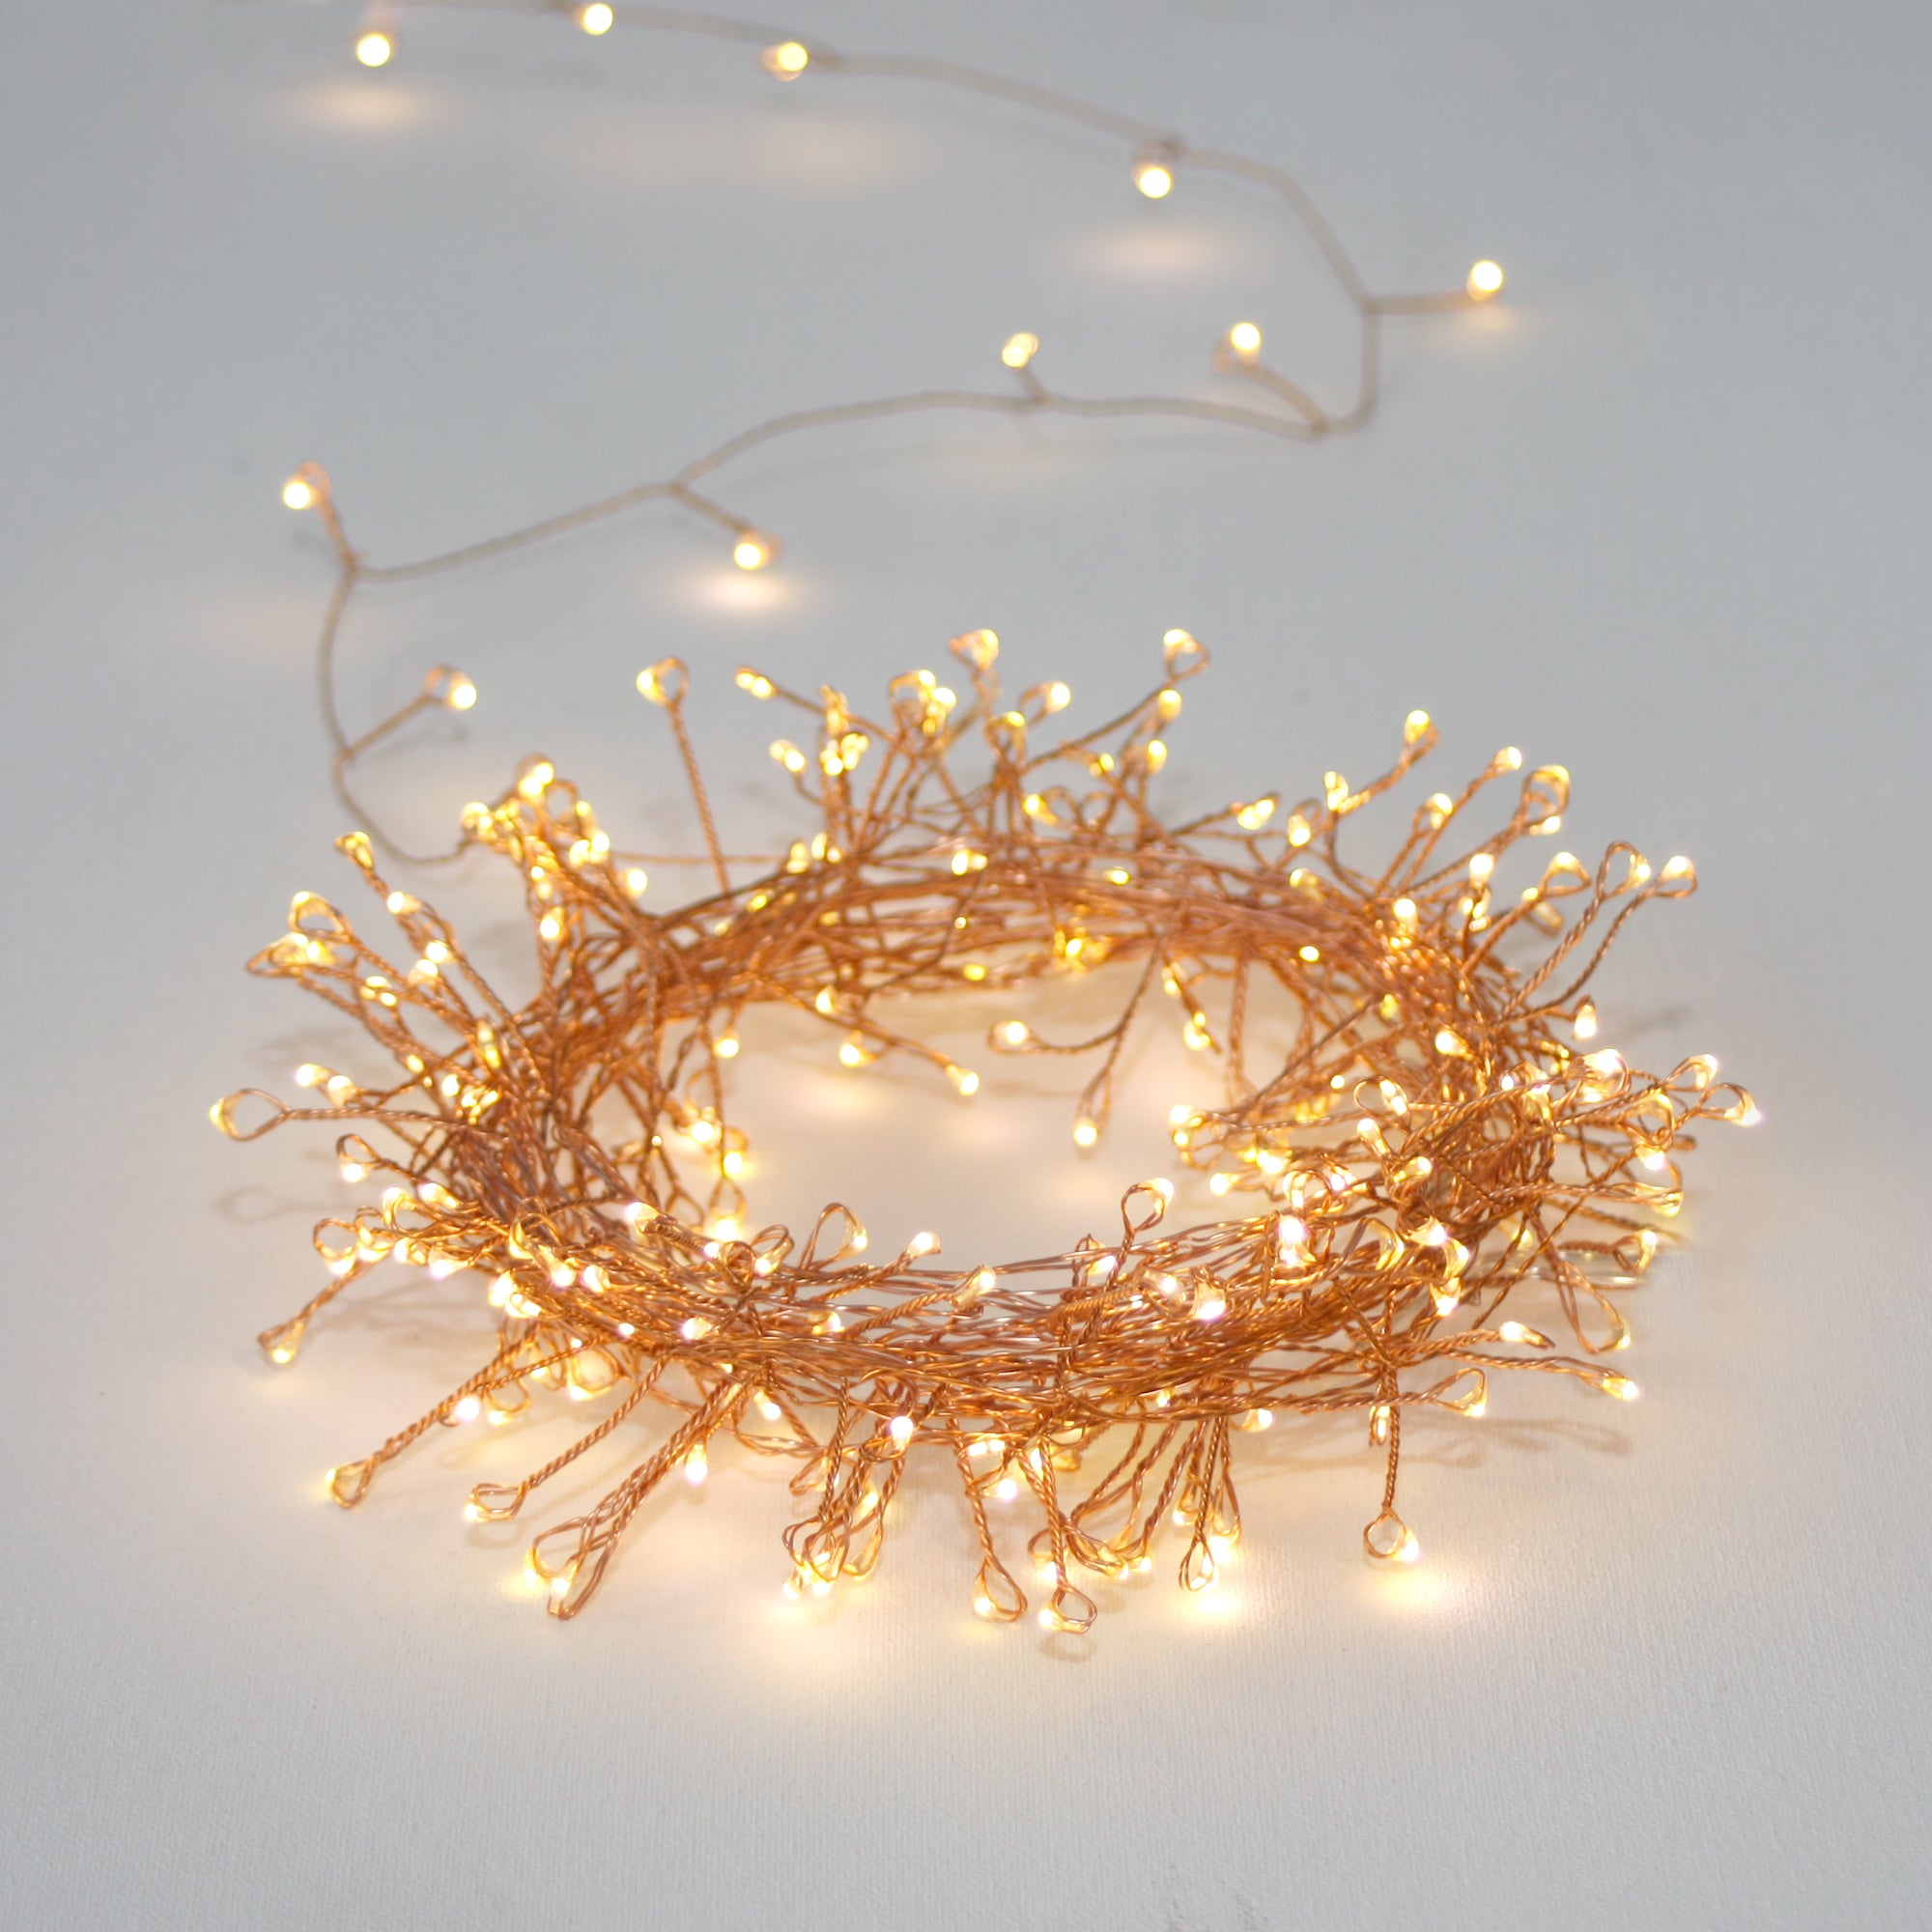 Copper Cluster Battery  Light Chain - 3m